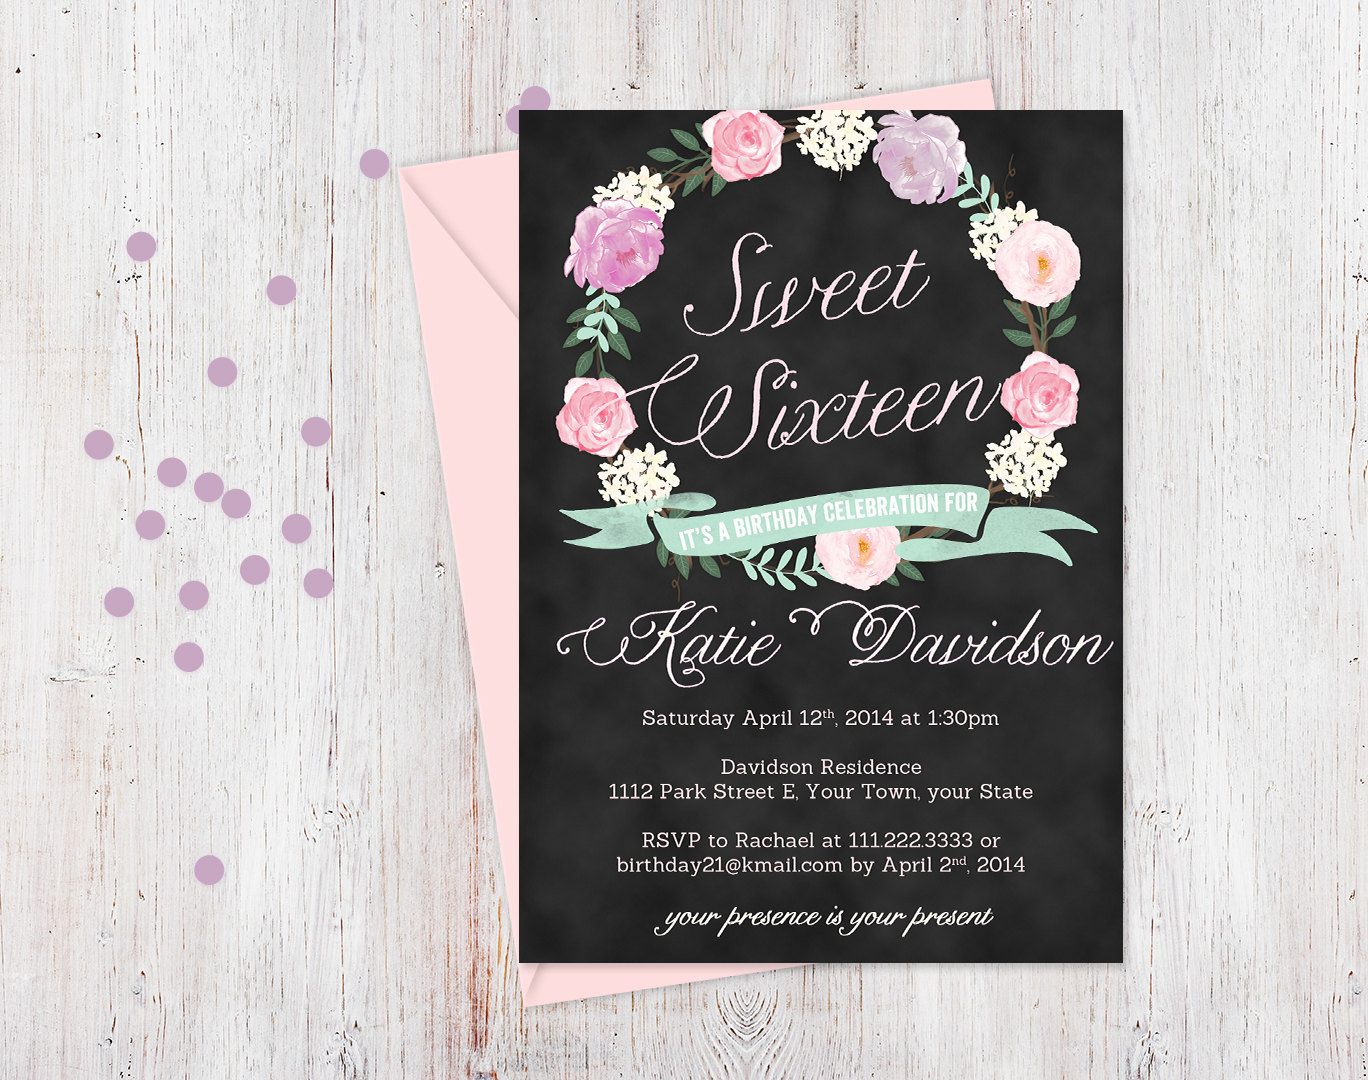 Sweet Dress 16th Birthday Invitations Wording Templates  Birthday